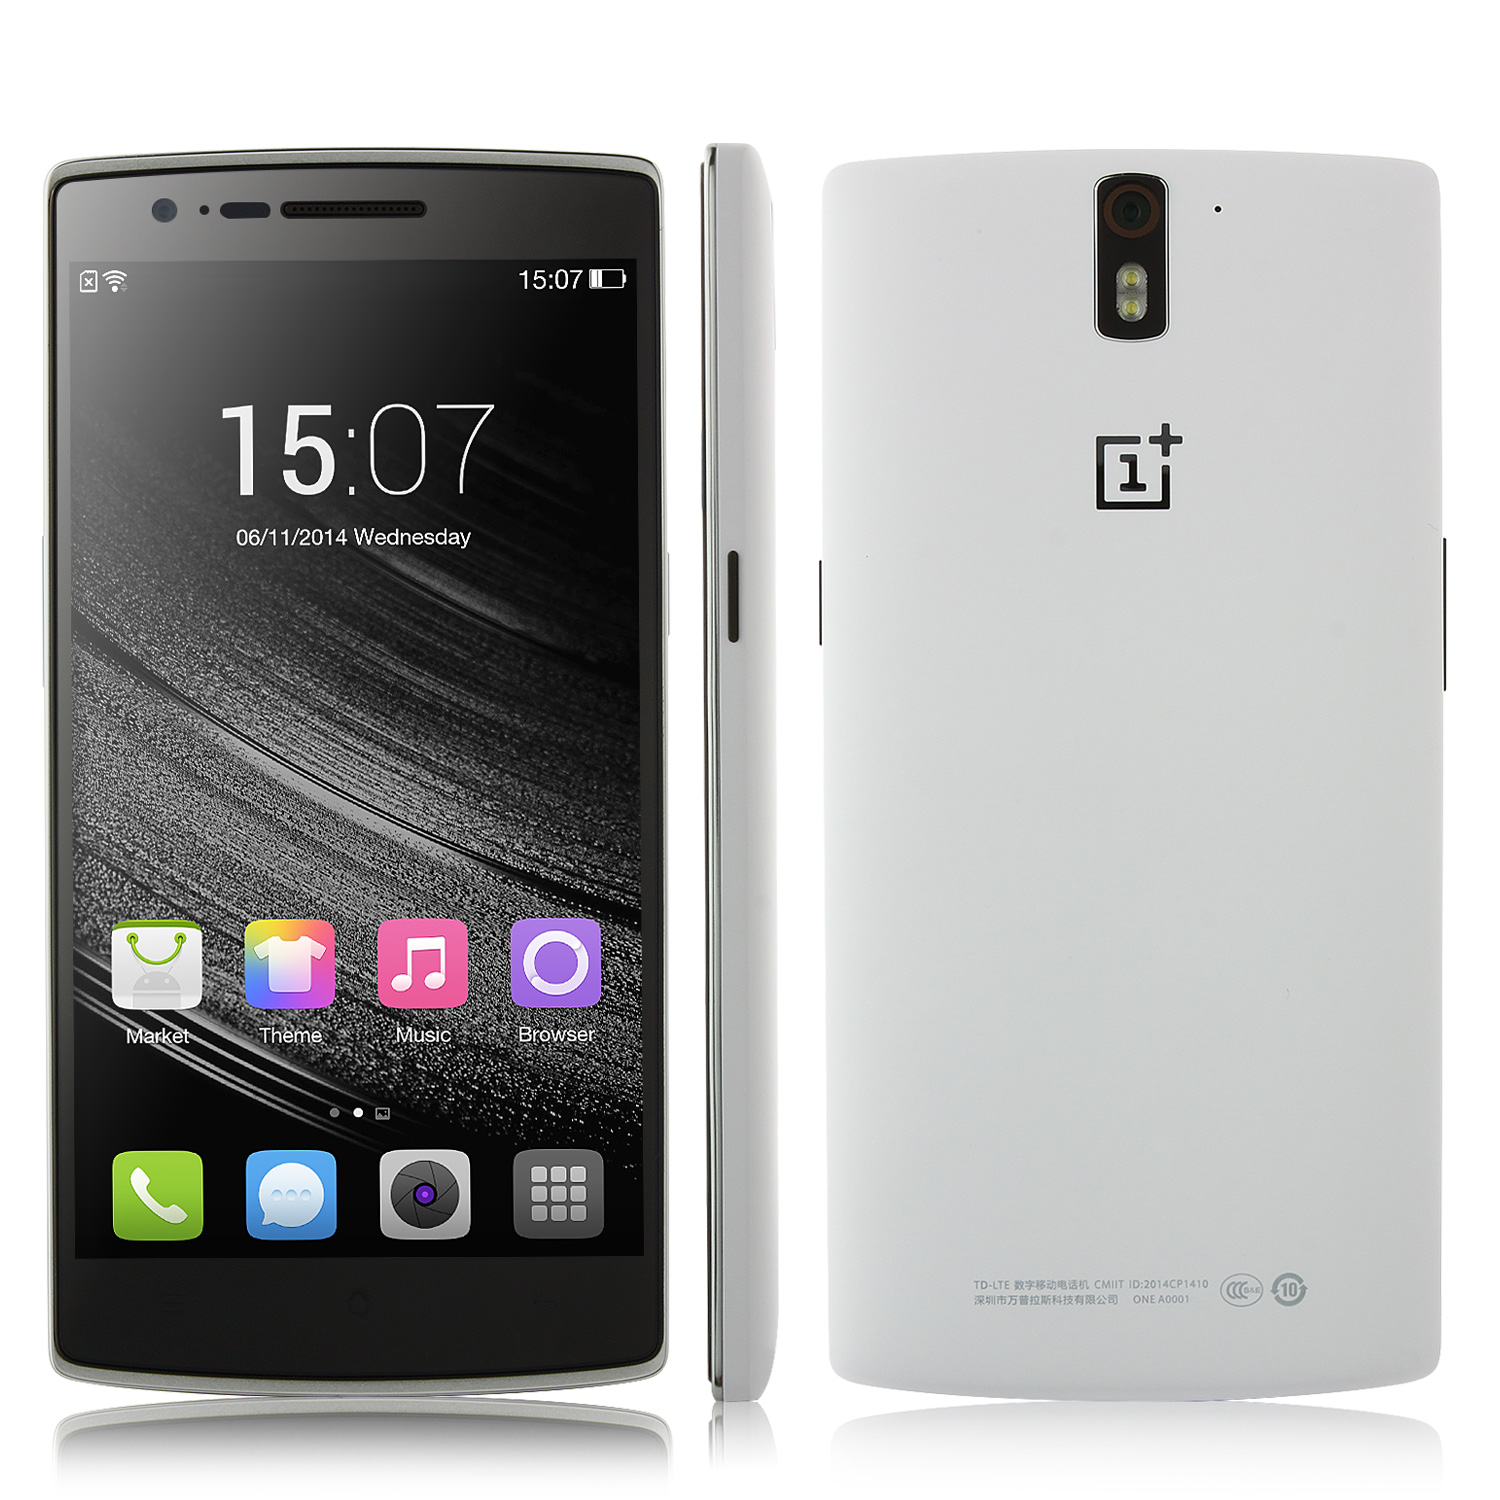 ONEPLUS ONE Smartphone 3GB 64GB Snapdragon 801 2.5GHz 5.5 Inch Gorilla Glass FHD White